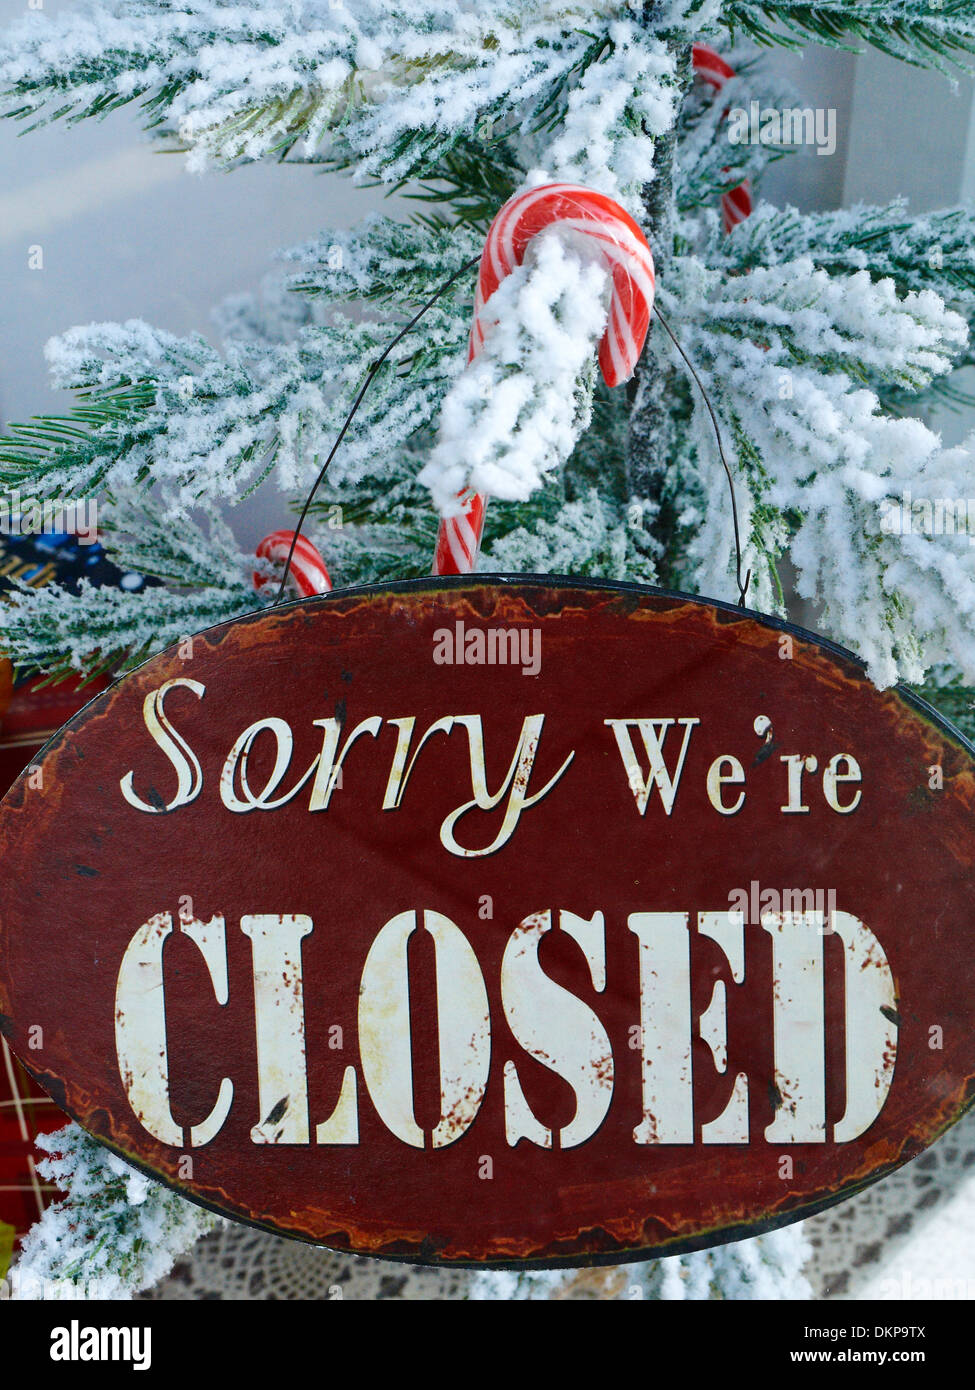 Closed For Christmas.Closed For Christmas Sign Stock Photos Closed For